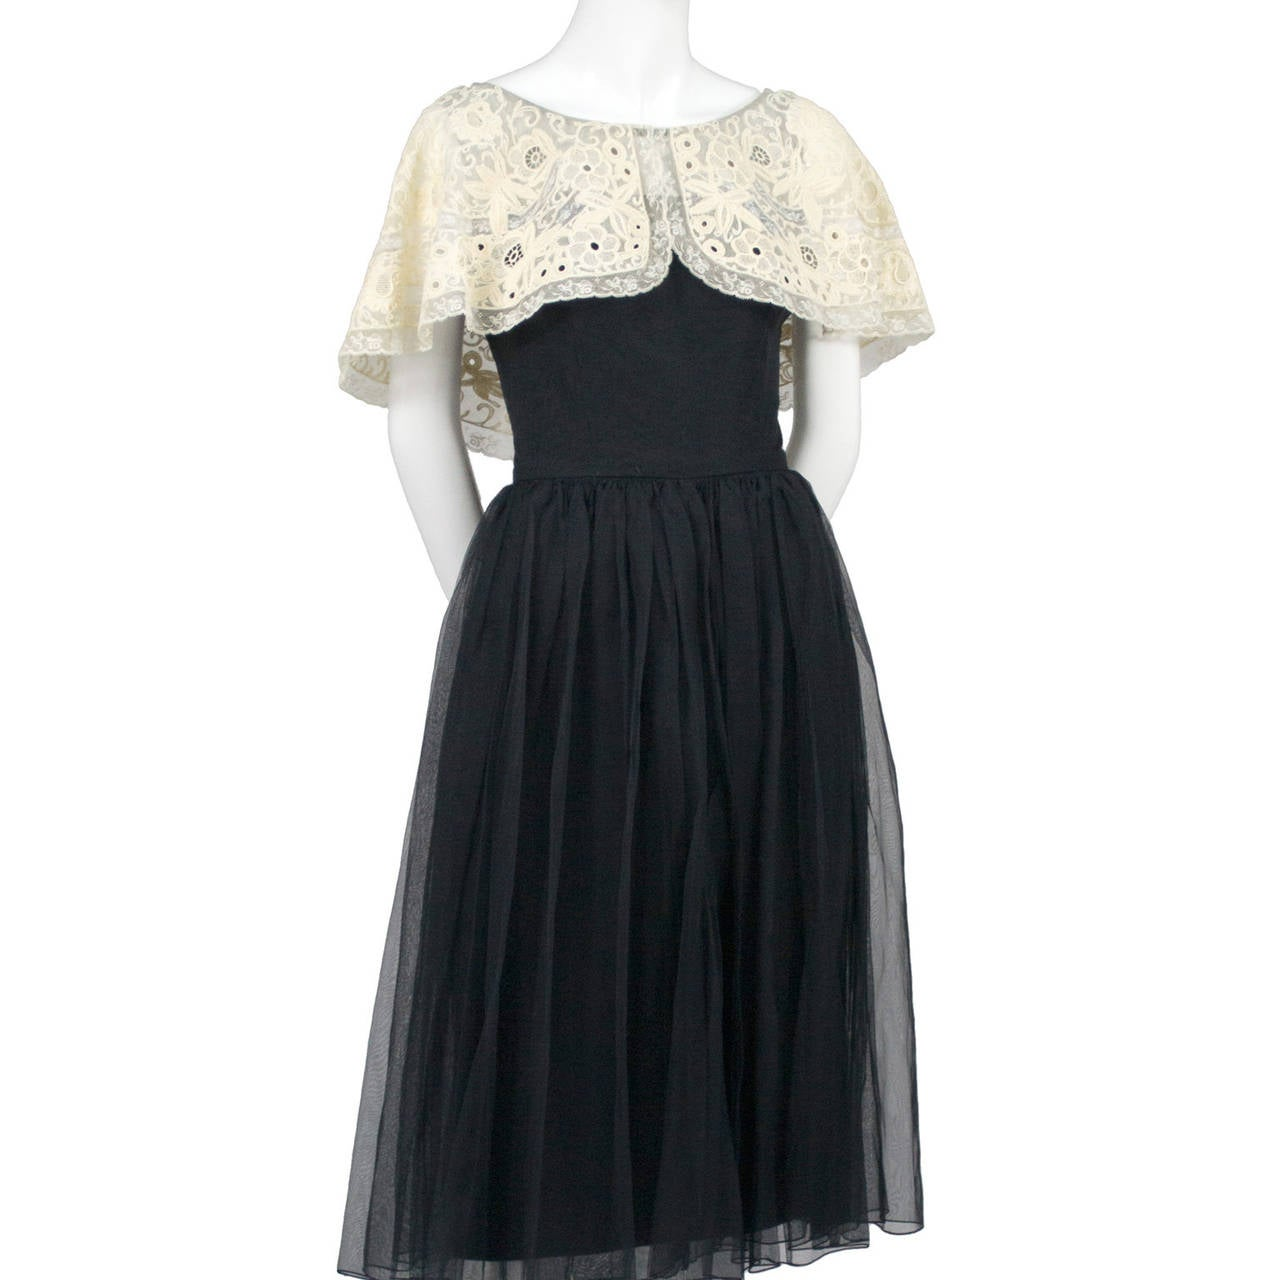 Larry Aldrich 1950s Vintage Dress Black Organza Wide Fine Lace Collar 4